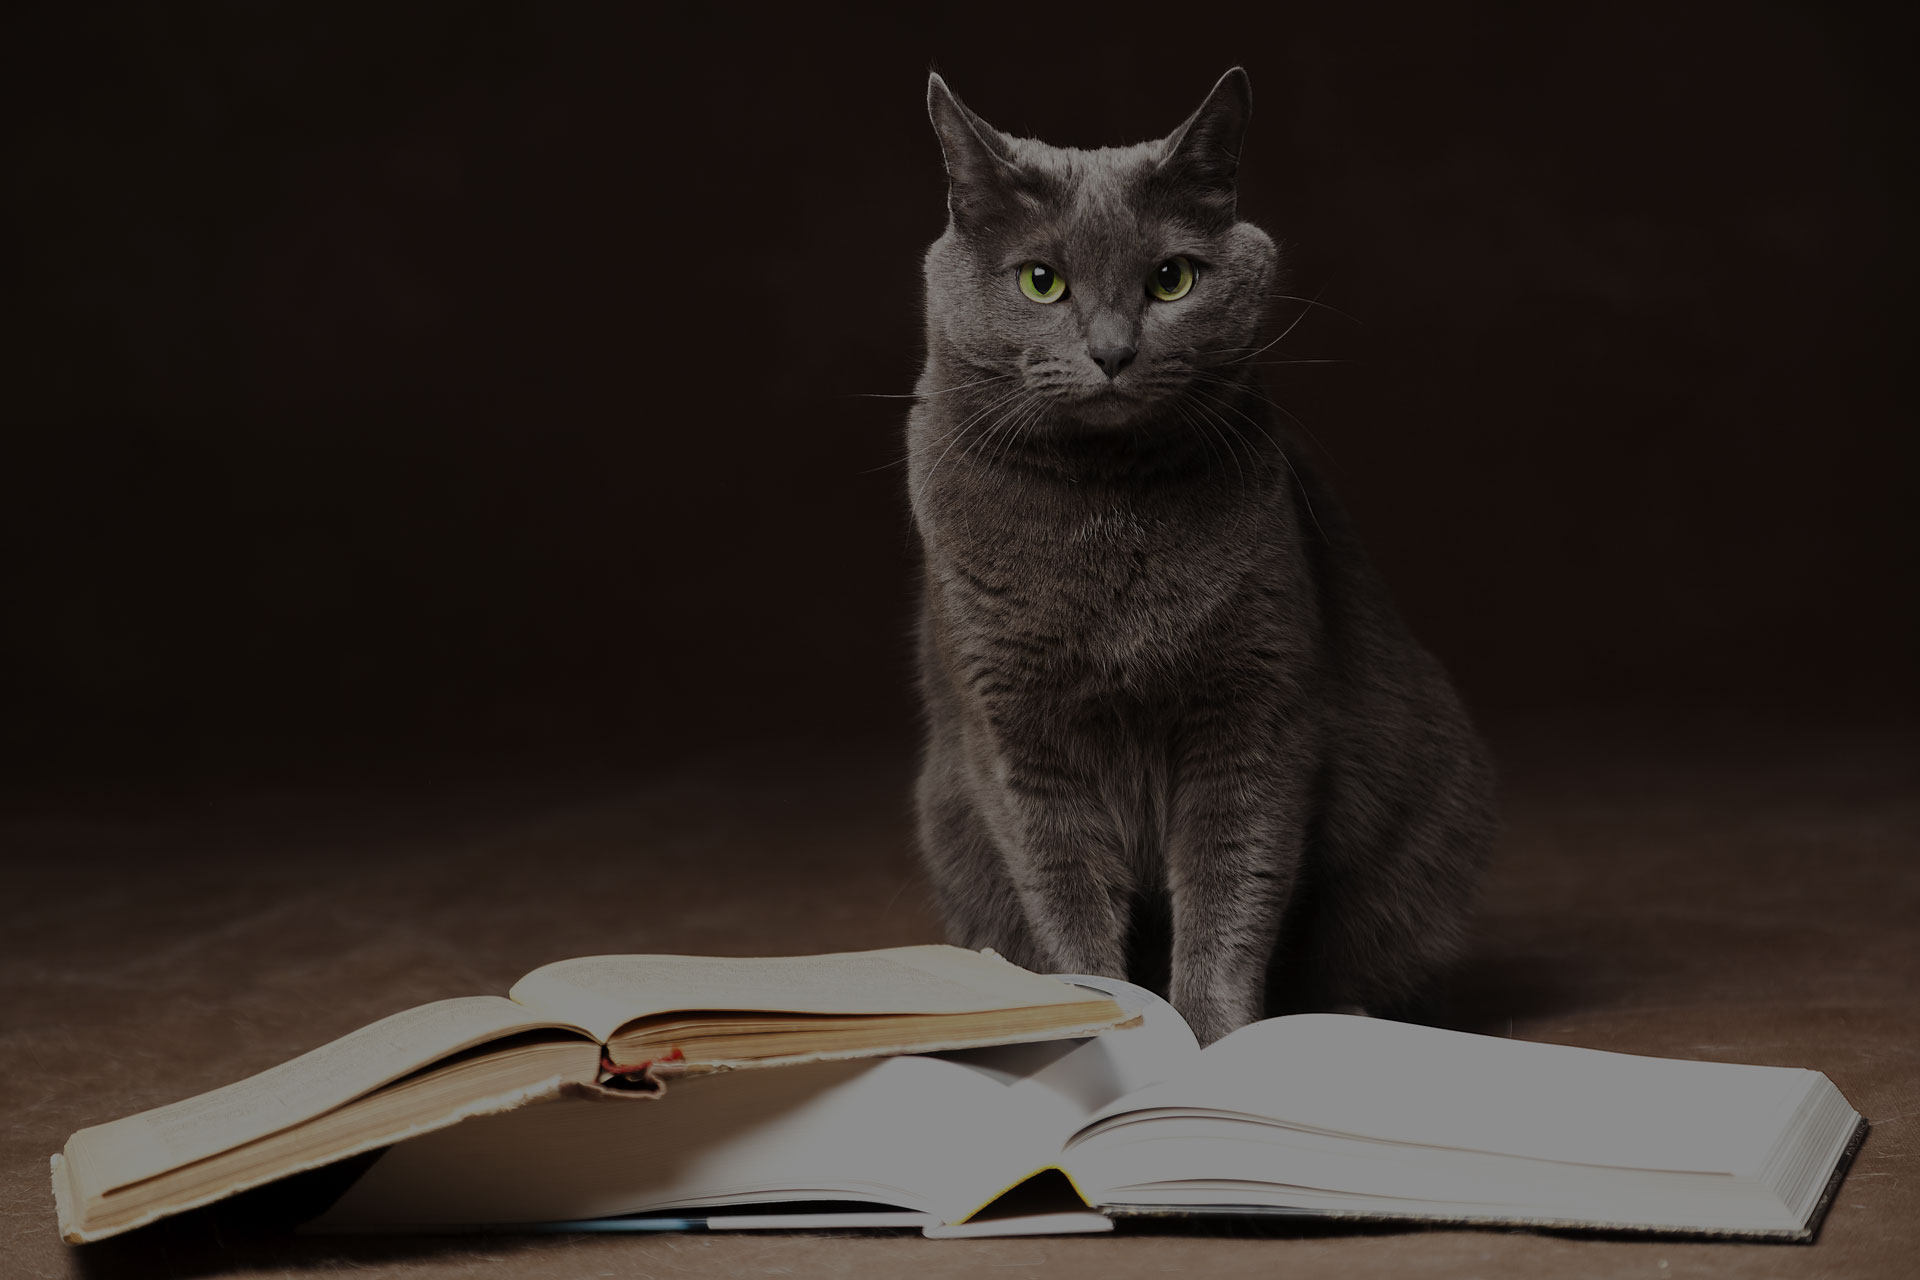 Russian Blue Cat sat on the floor with the books in front of her